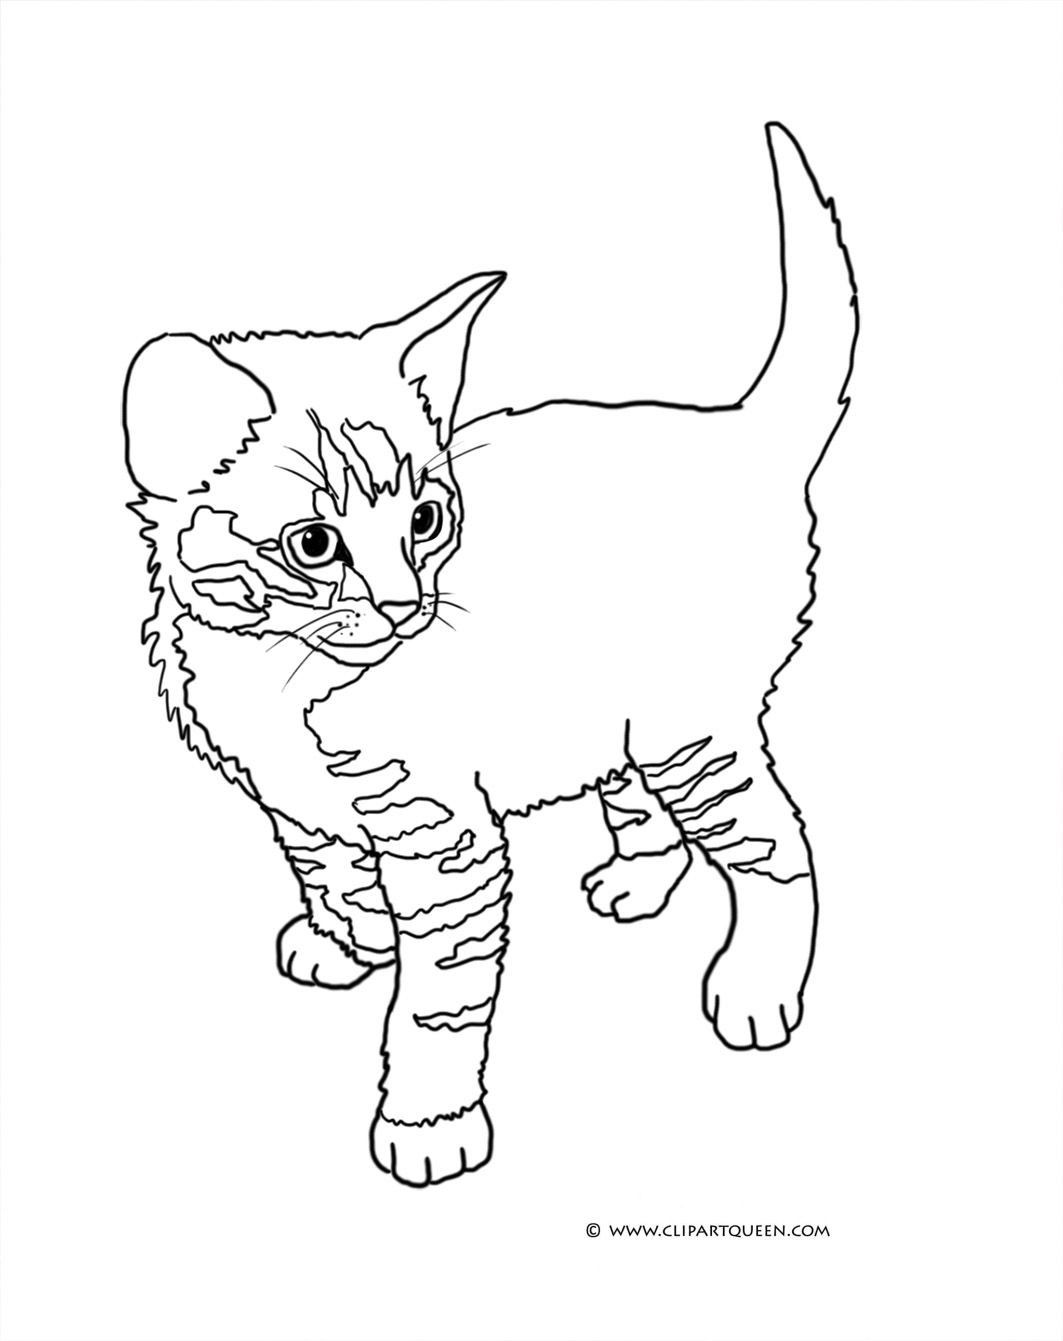 Tabby Cat Coloring Page Youngandtae Com Cat Coloring Book Cat Coloring Page Kitten Coloring Book